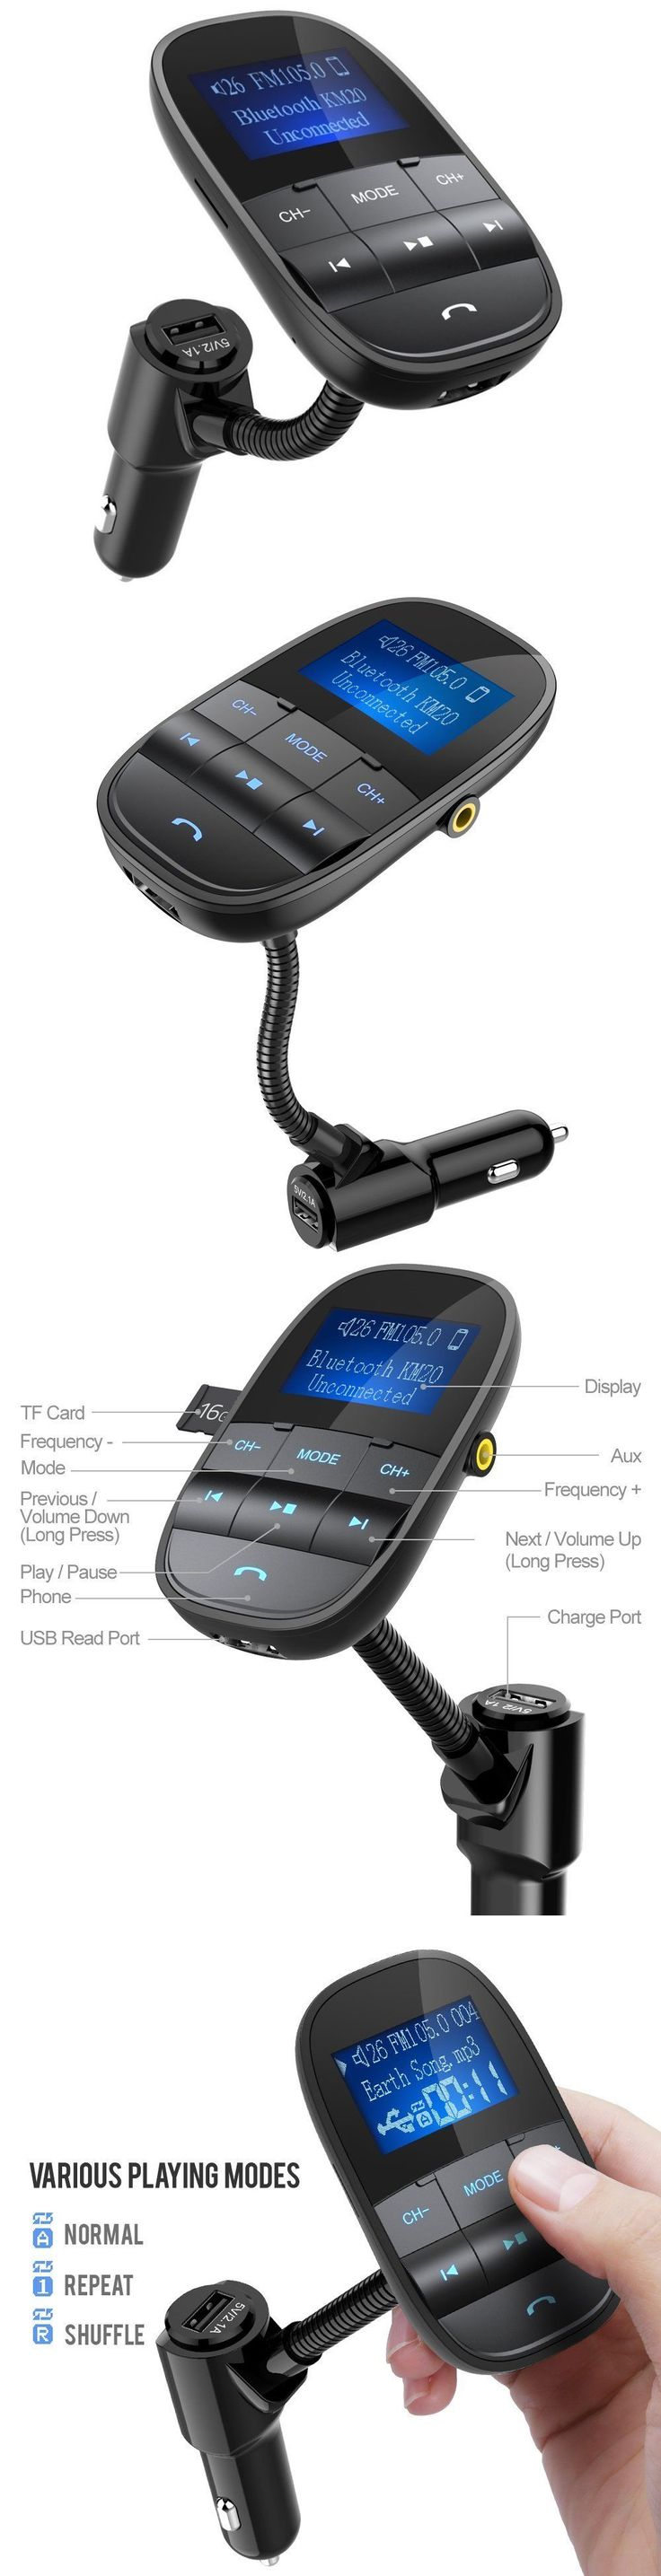 FM Transmitters: Wireless Bluetooth Fm Transmitter Radio Adapter Car Kit Hands Free Phone Mp3 Mp4 -> BUY IT NOW ONLY: $35.18 on eBay!